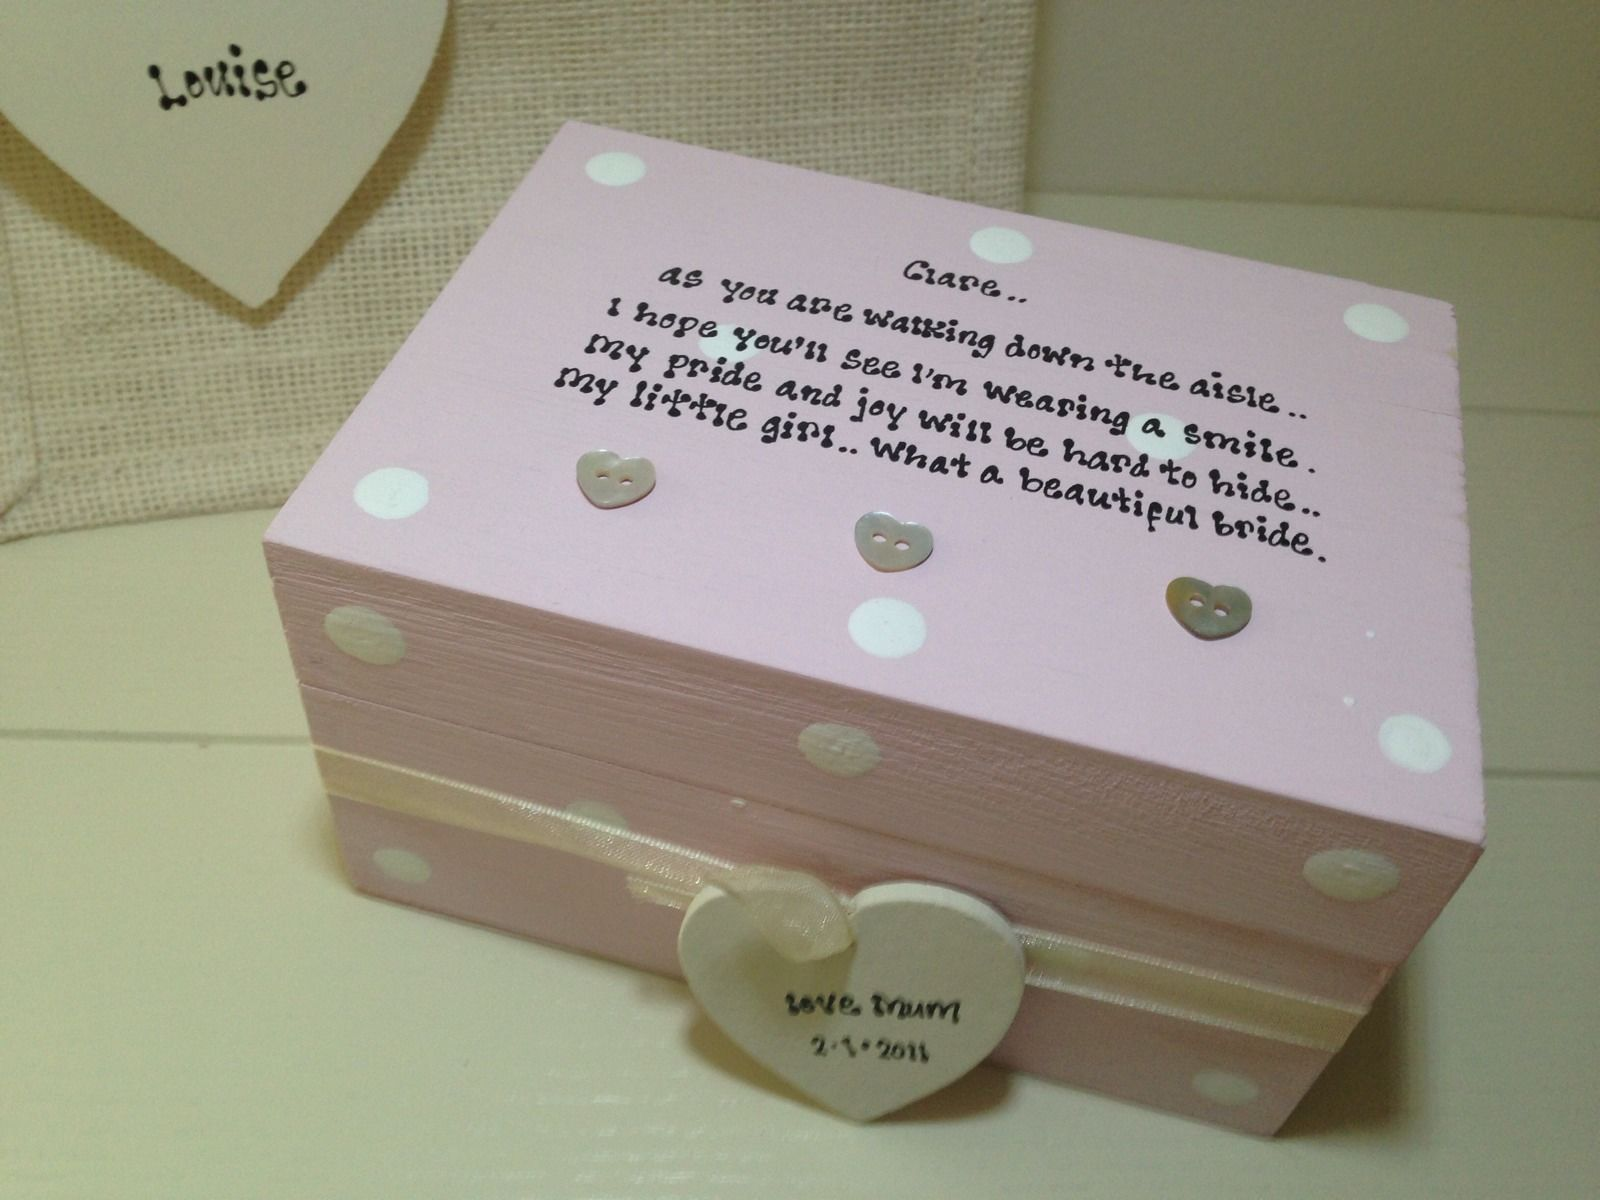 Wedding Gift For Bride From Mom : Ideas. Gifts From Mother To Daughter On Wedding Day ...